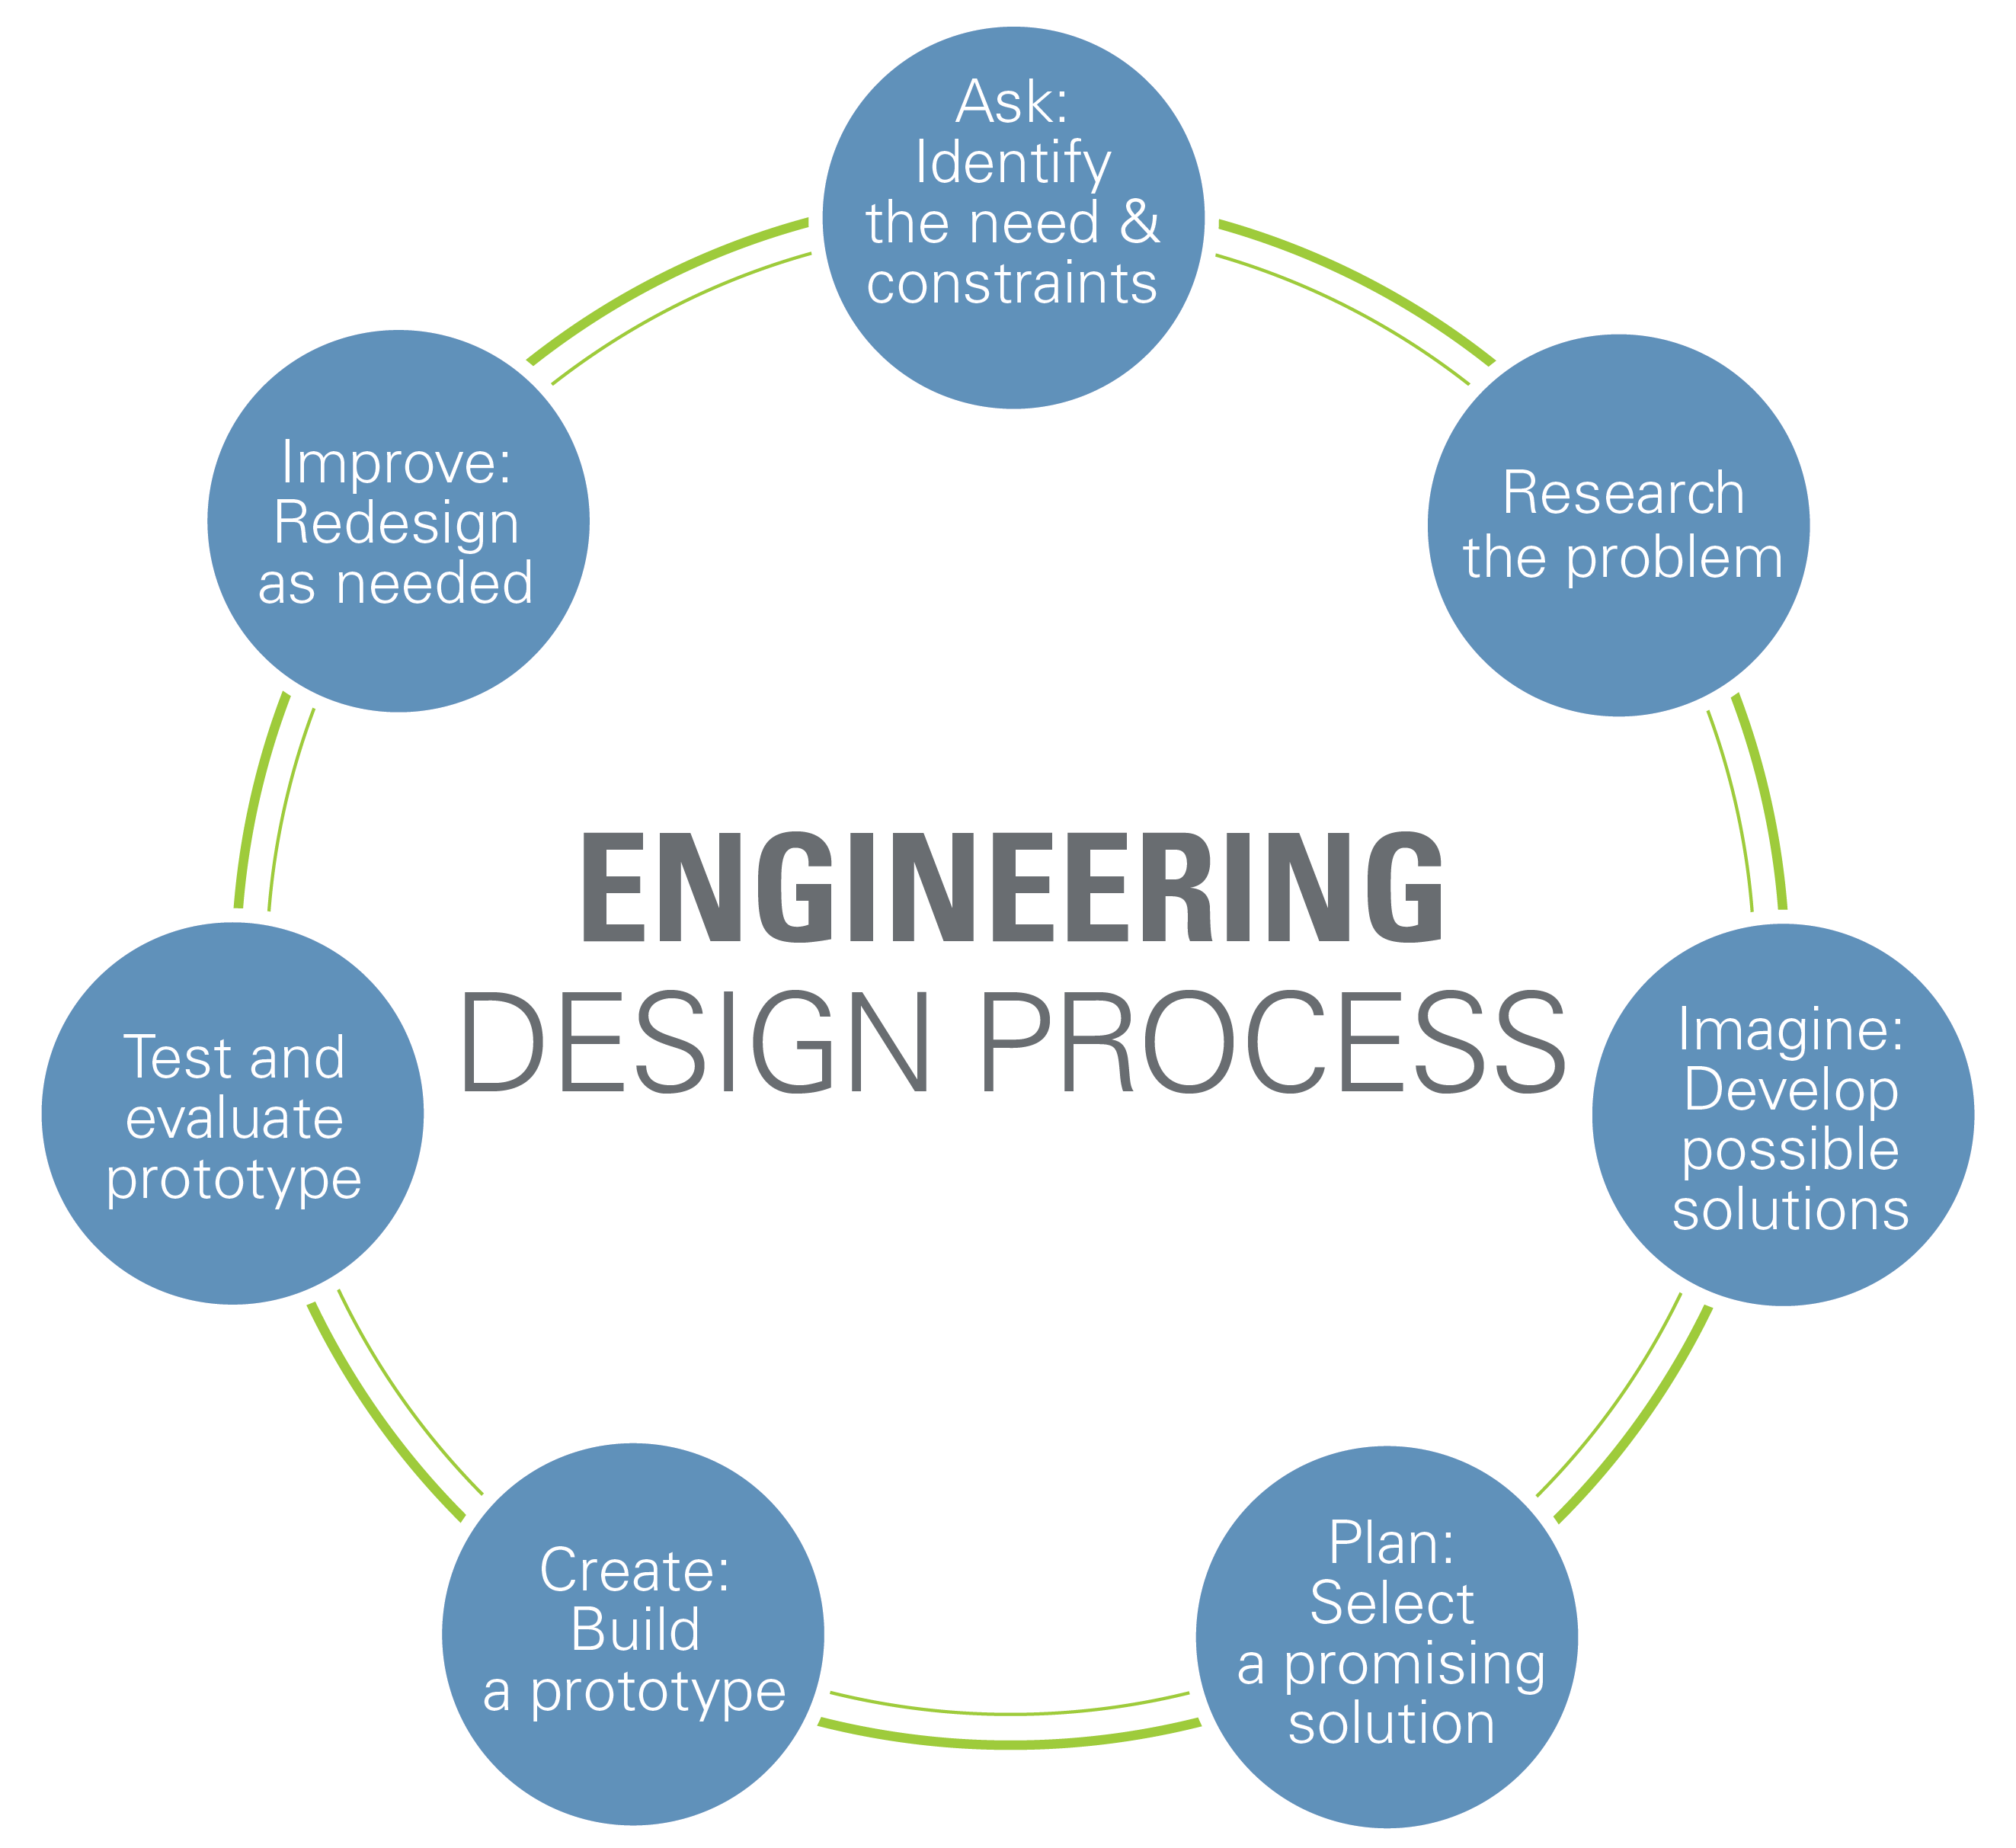 engineering design process wwwteachengineeringorg